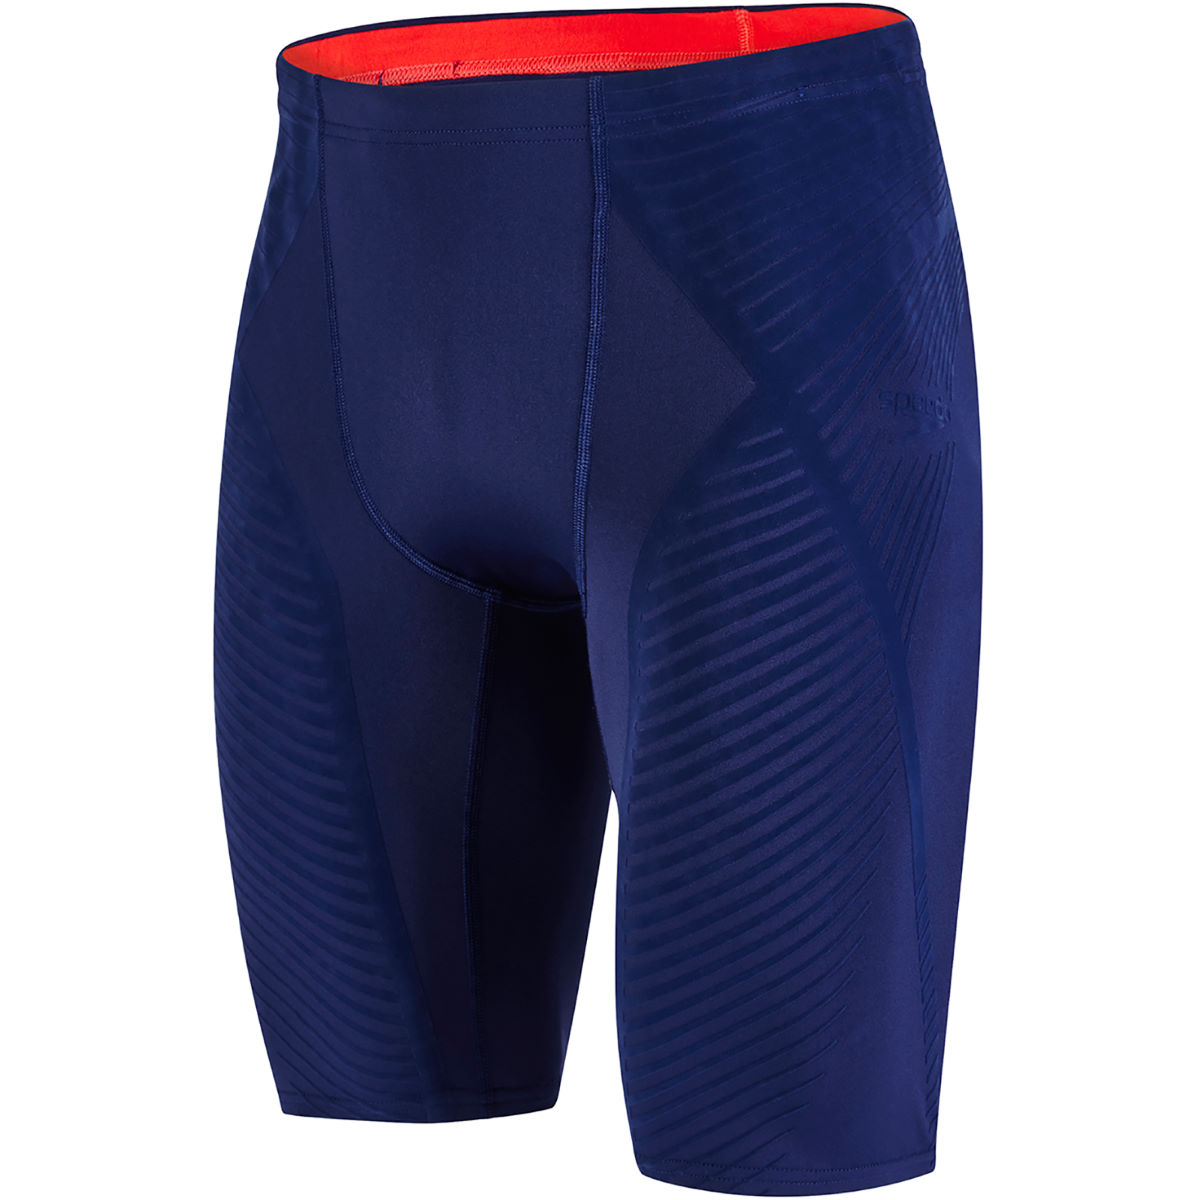 Jammer Speedo Fit Power Form - 36 Navy/Lava Red